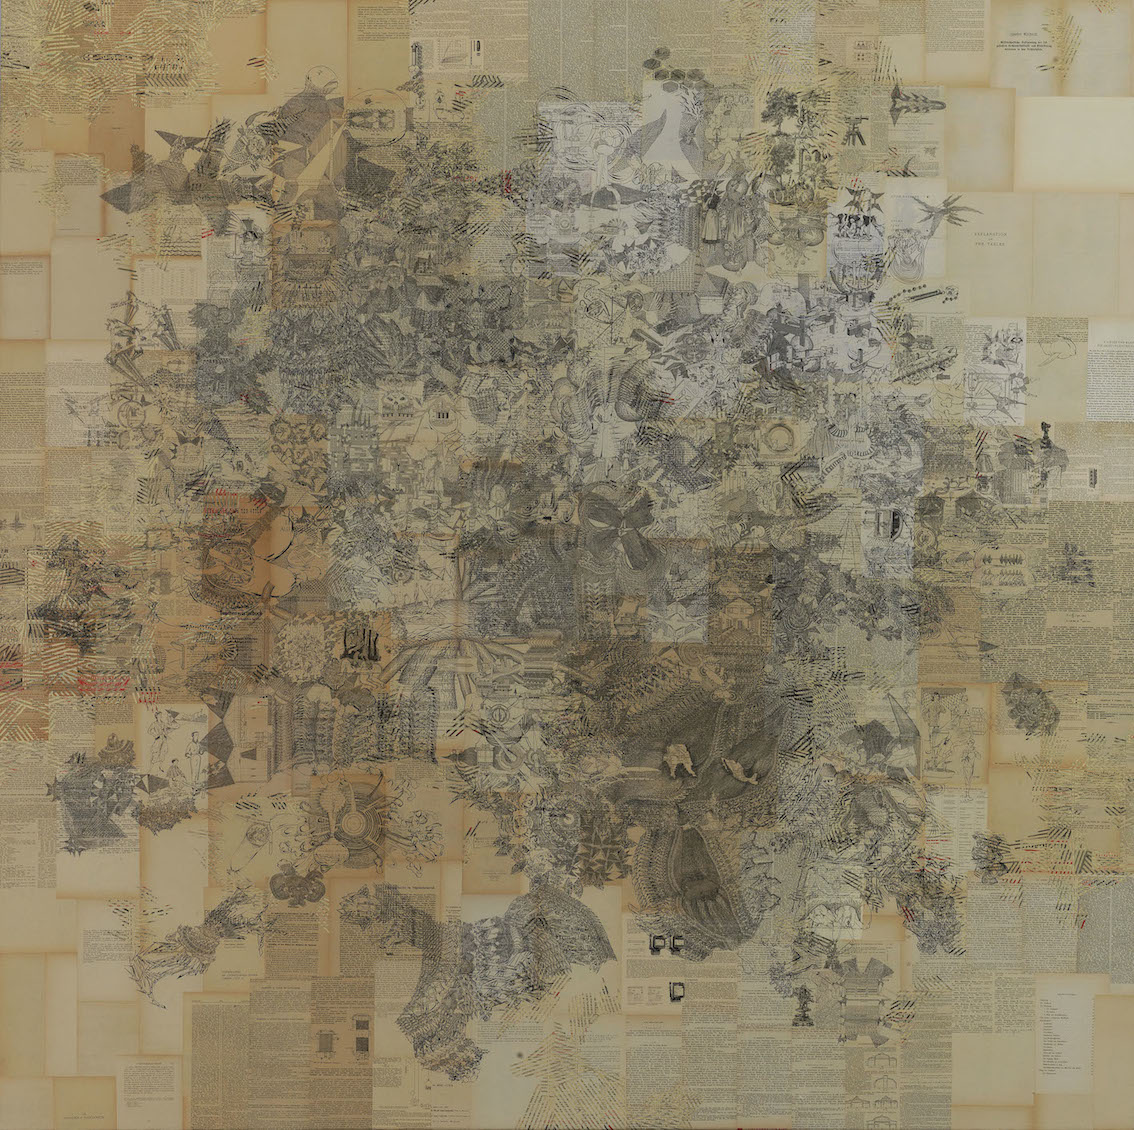 Antonis Donef, untitled, 2014, ink on paper mounted on canvas, 220x219.5cm, courtesy of the artist and Rosenfeld Porcini.